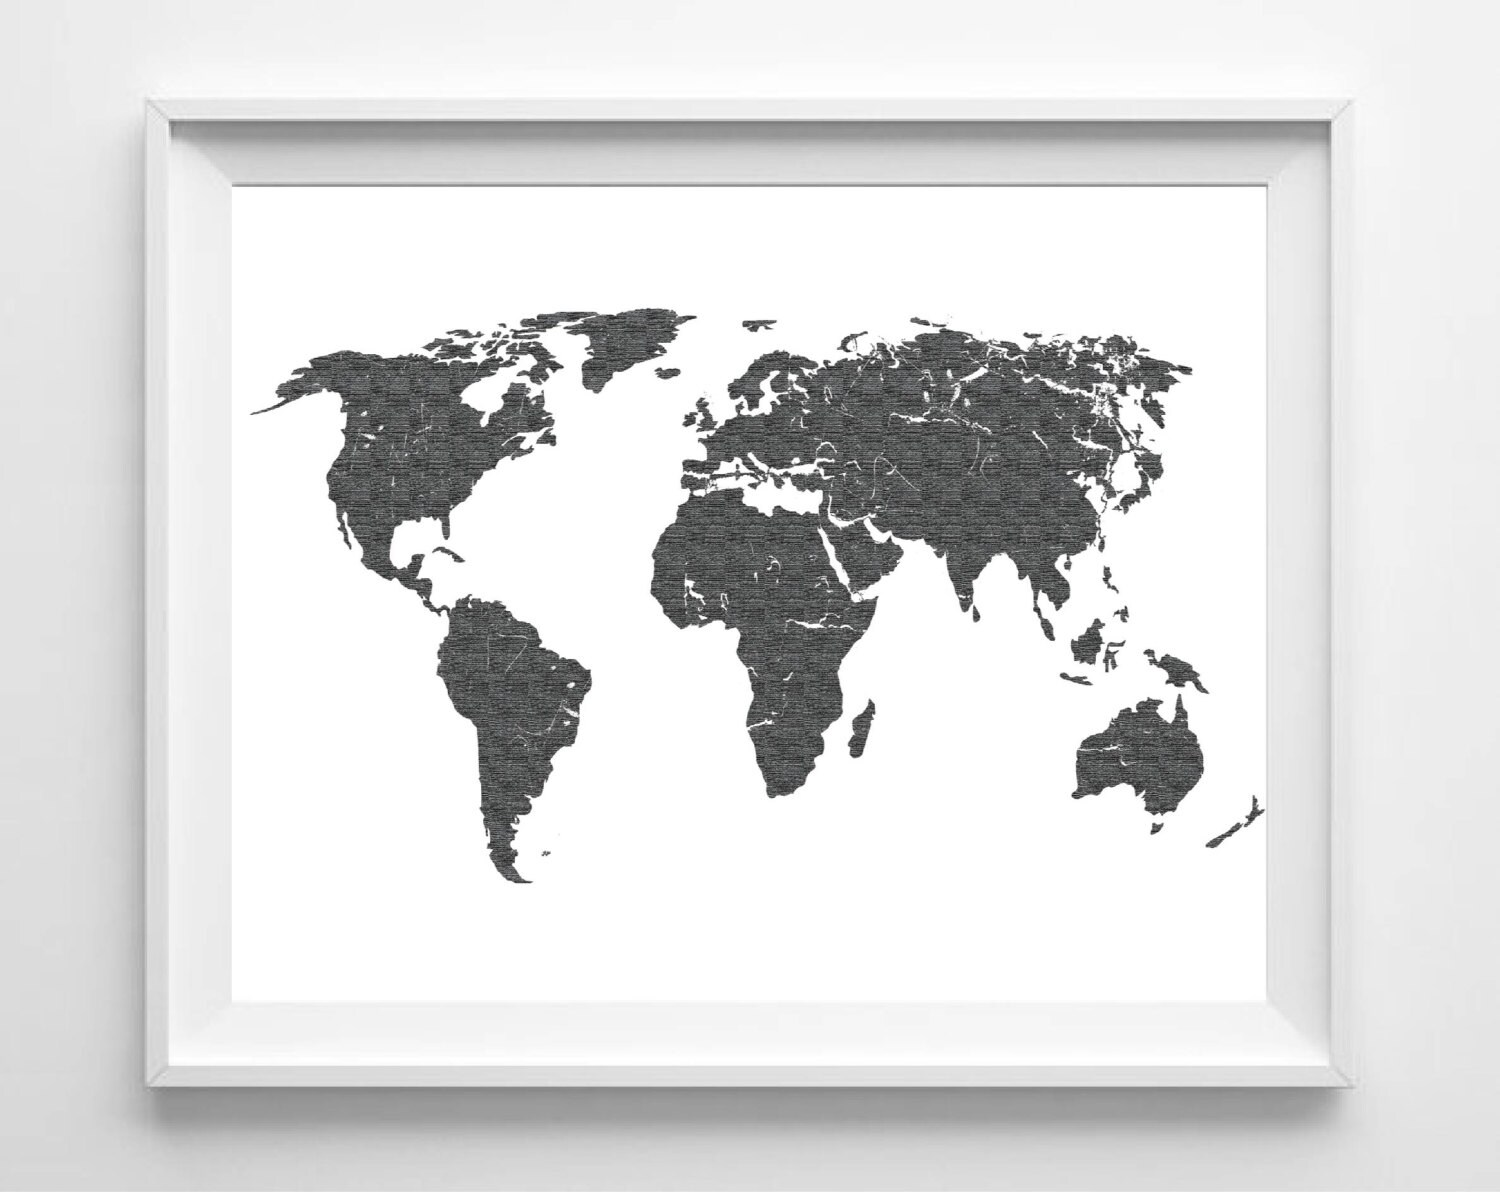 World map print printable black white wall art 11x14 zoom gumiabroncs Image collections